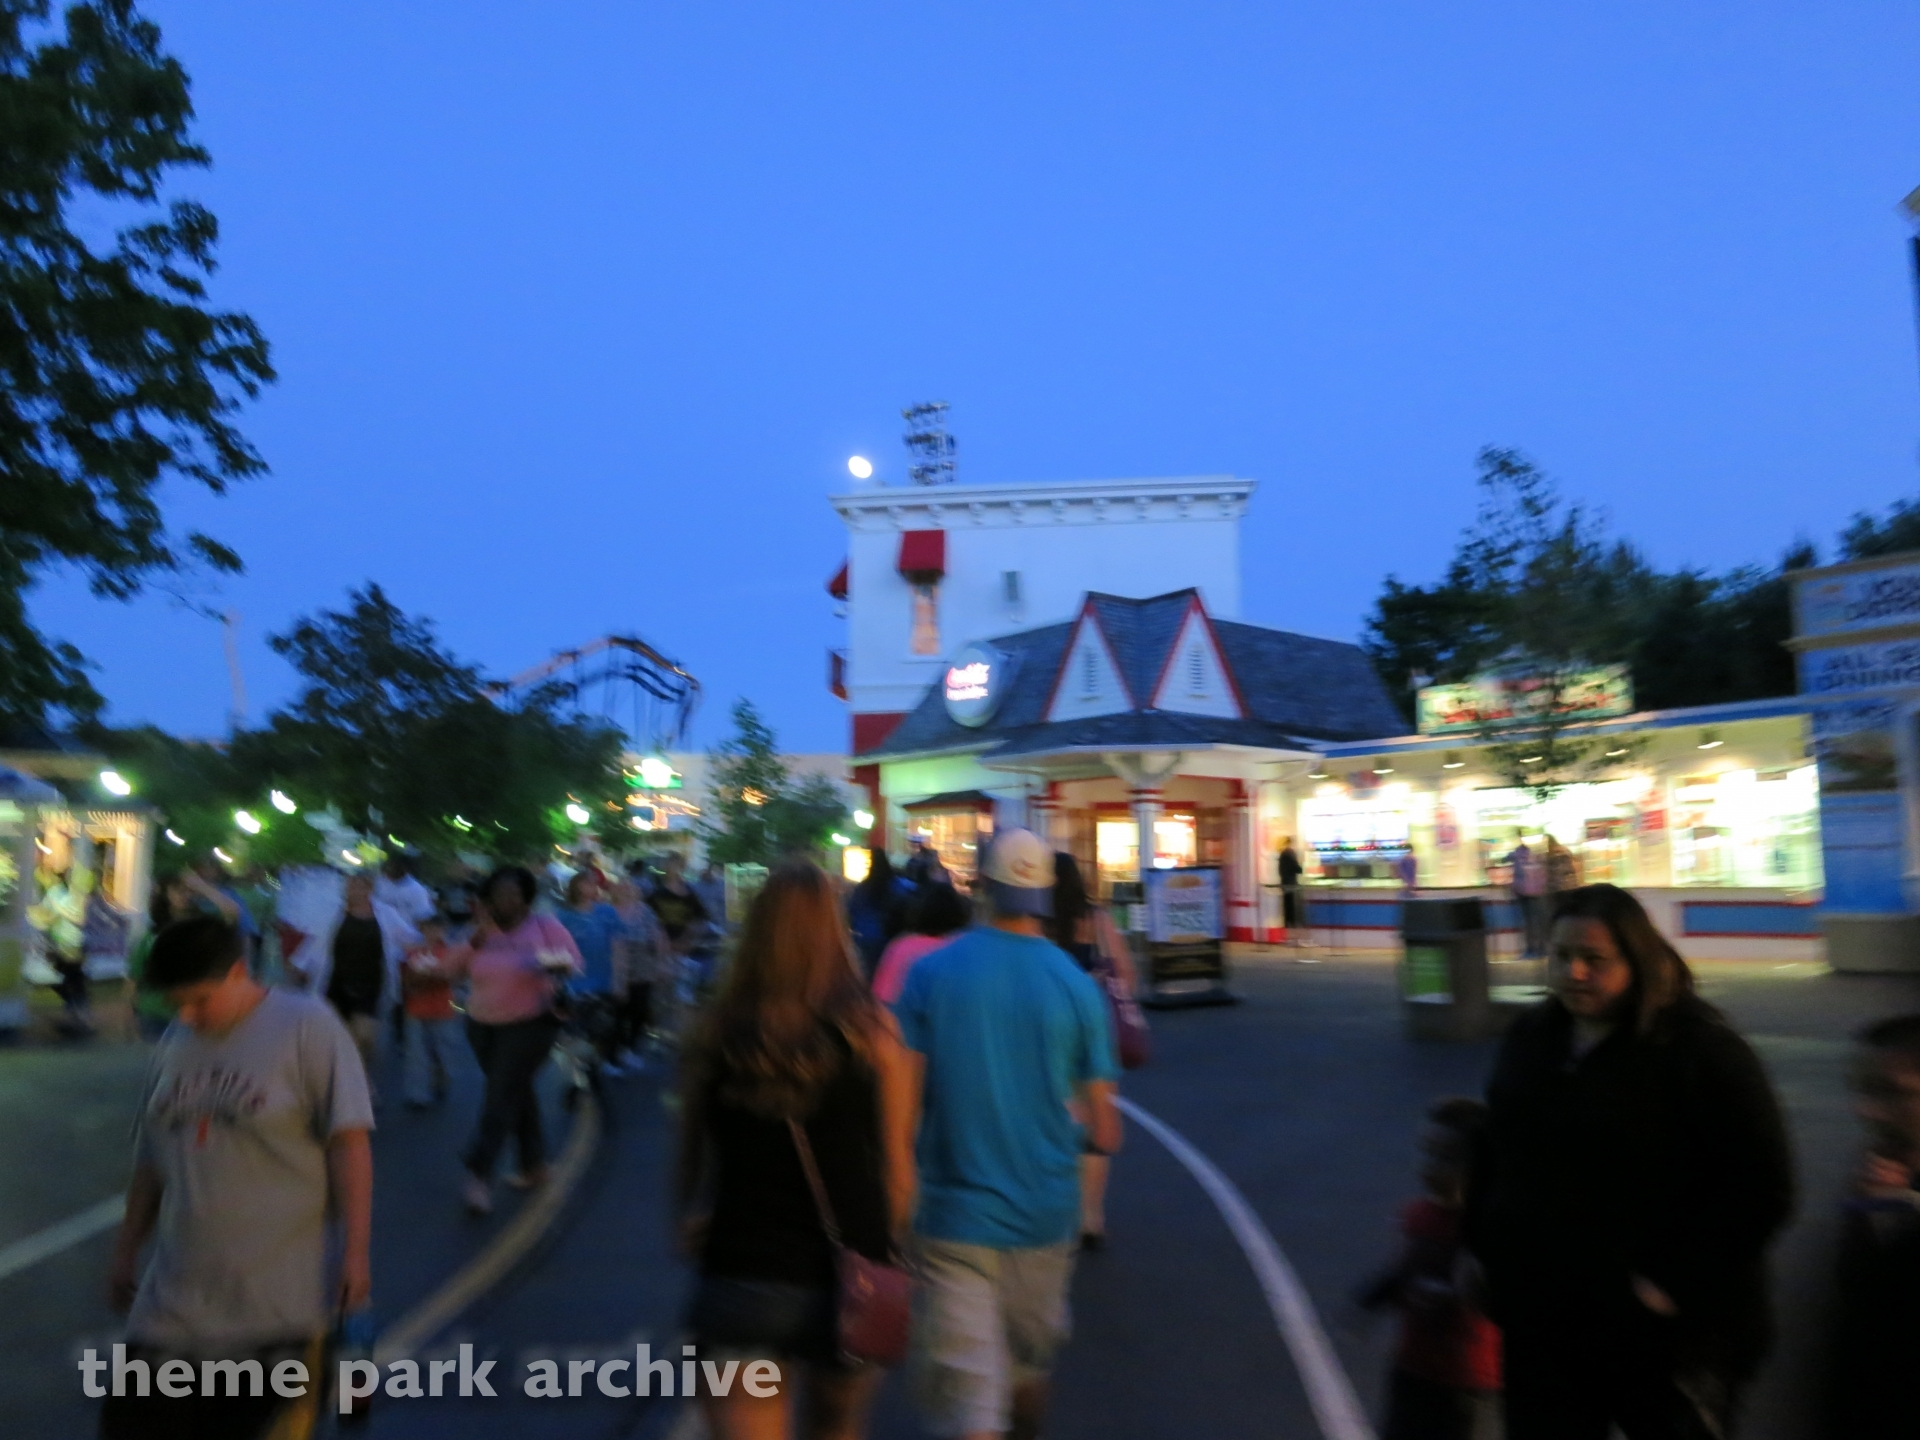 Hometown Square at Six Flags Great America